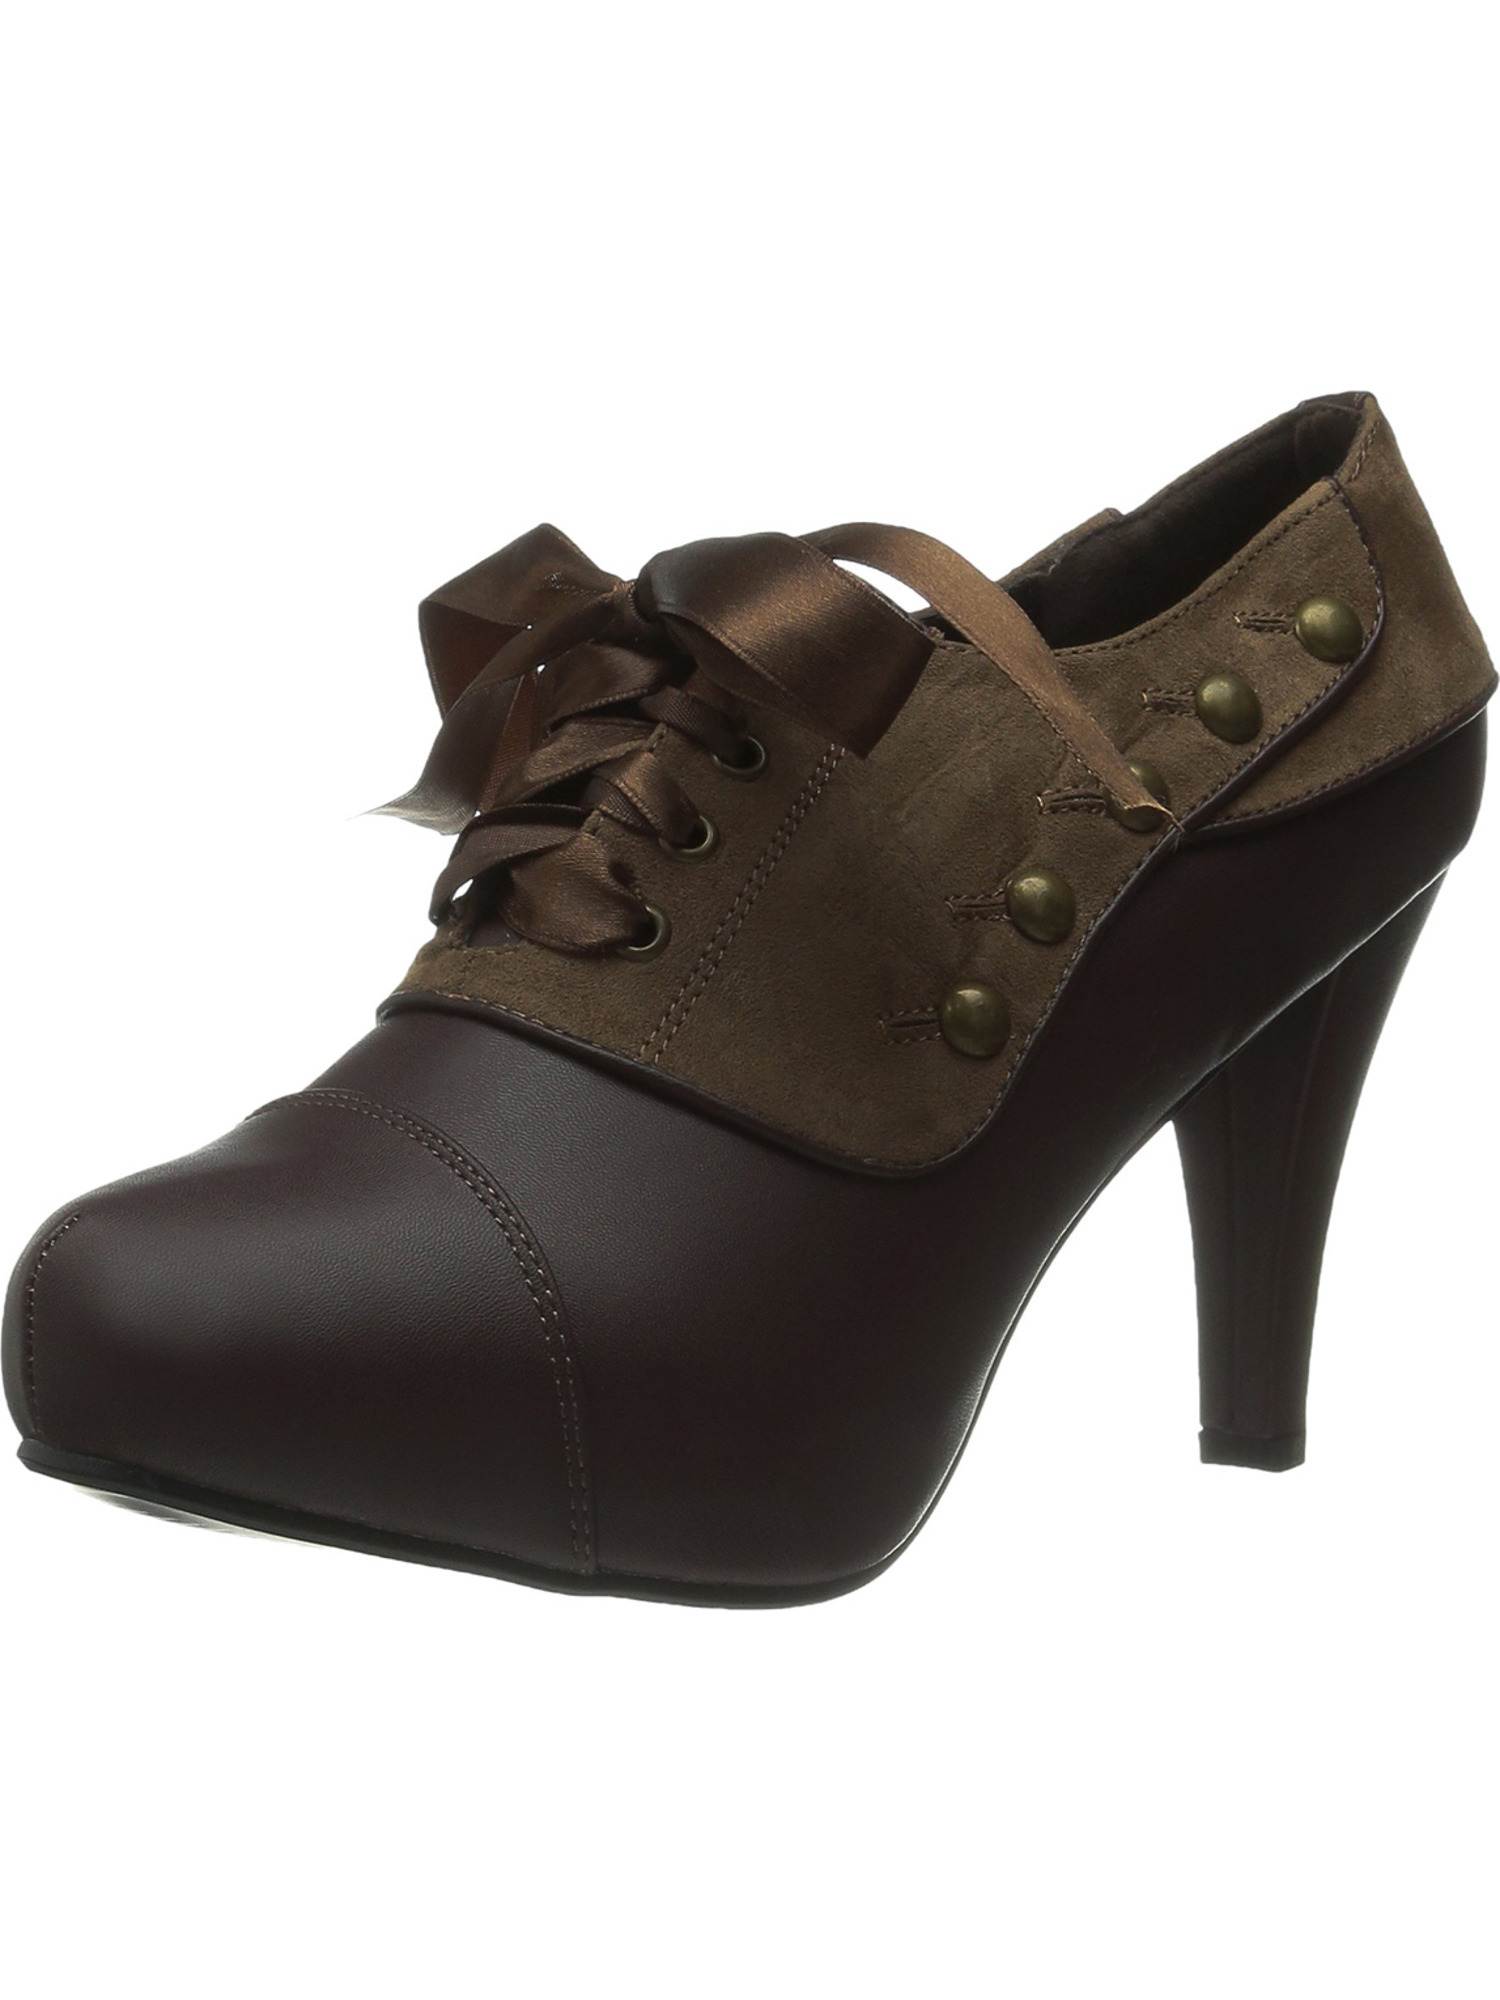 Womens Tan High Heels Lace Up Oxfords Brown Pumps Gold Studs 4 Inch Heels Shoes